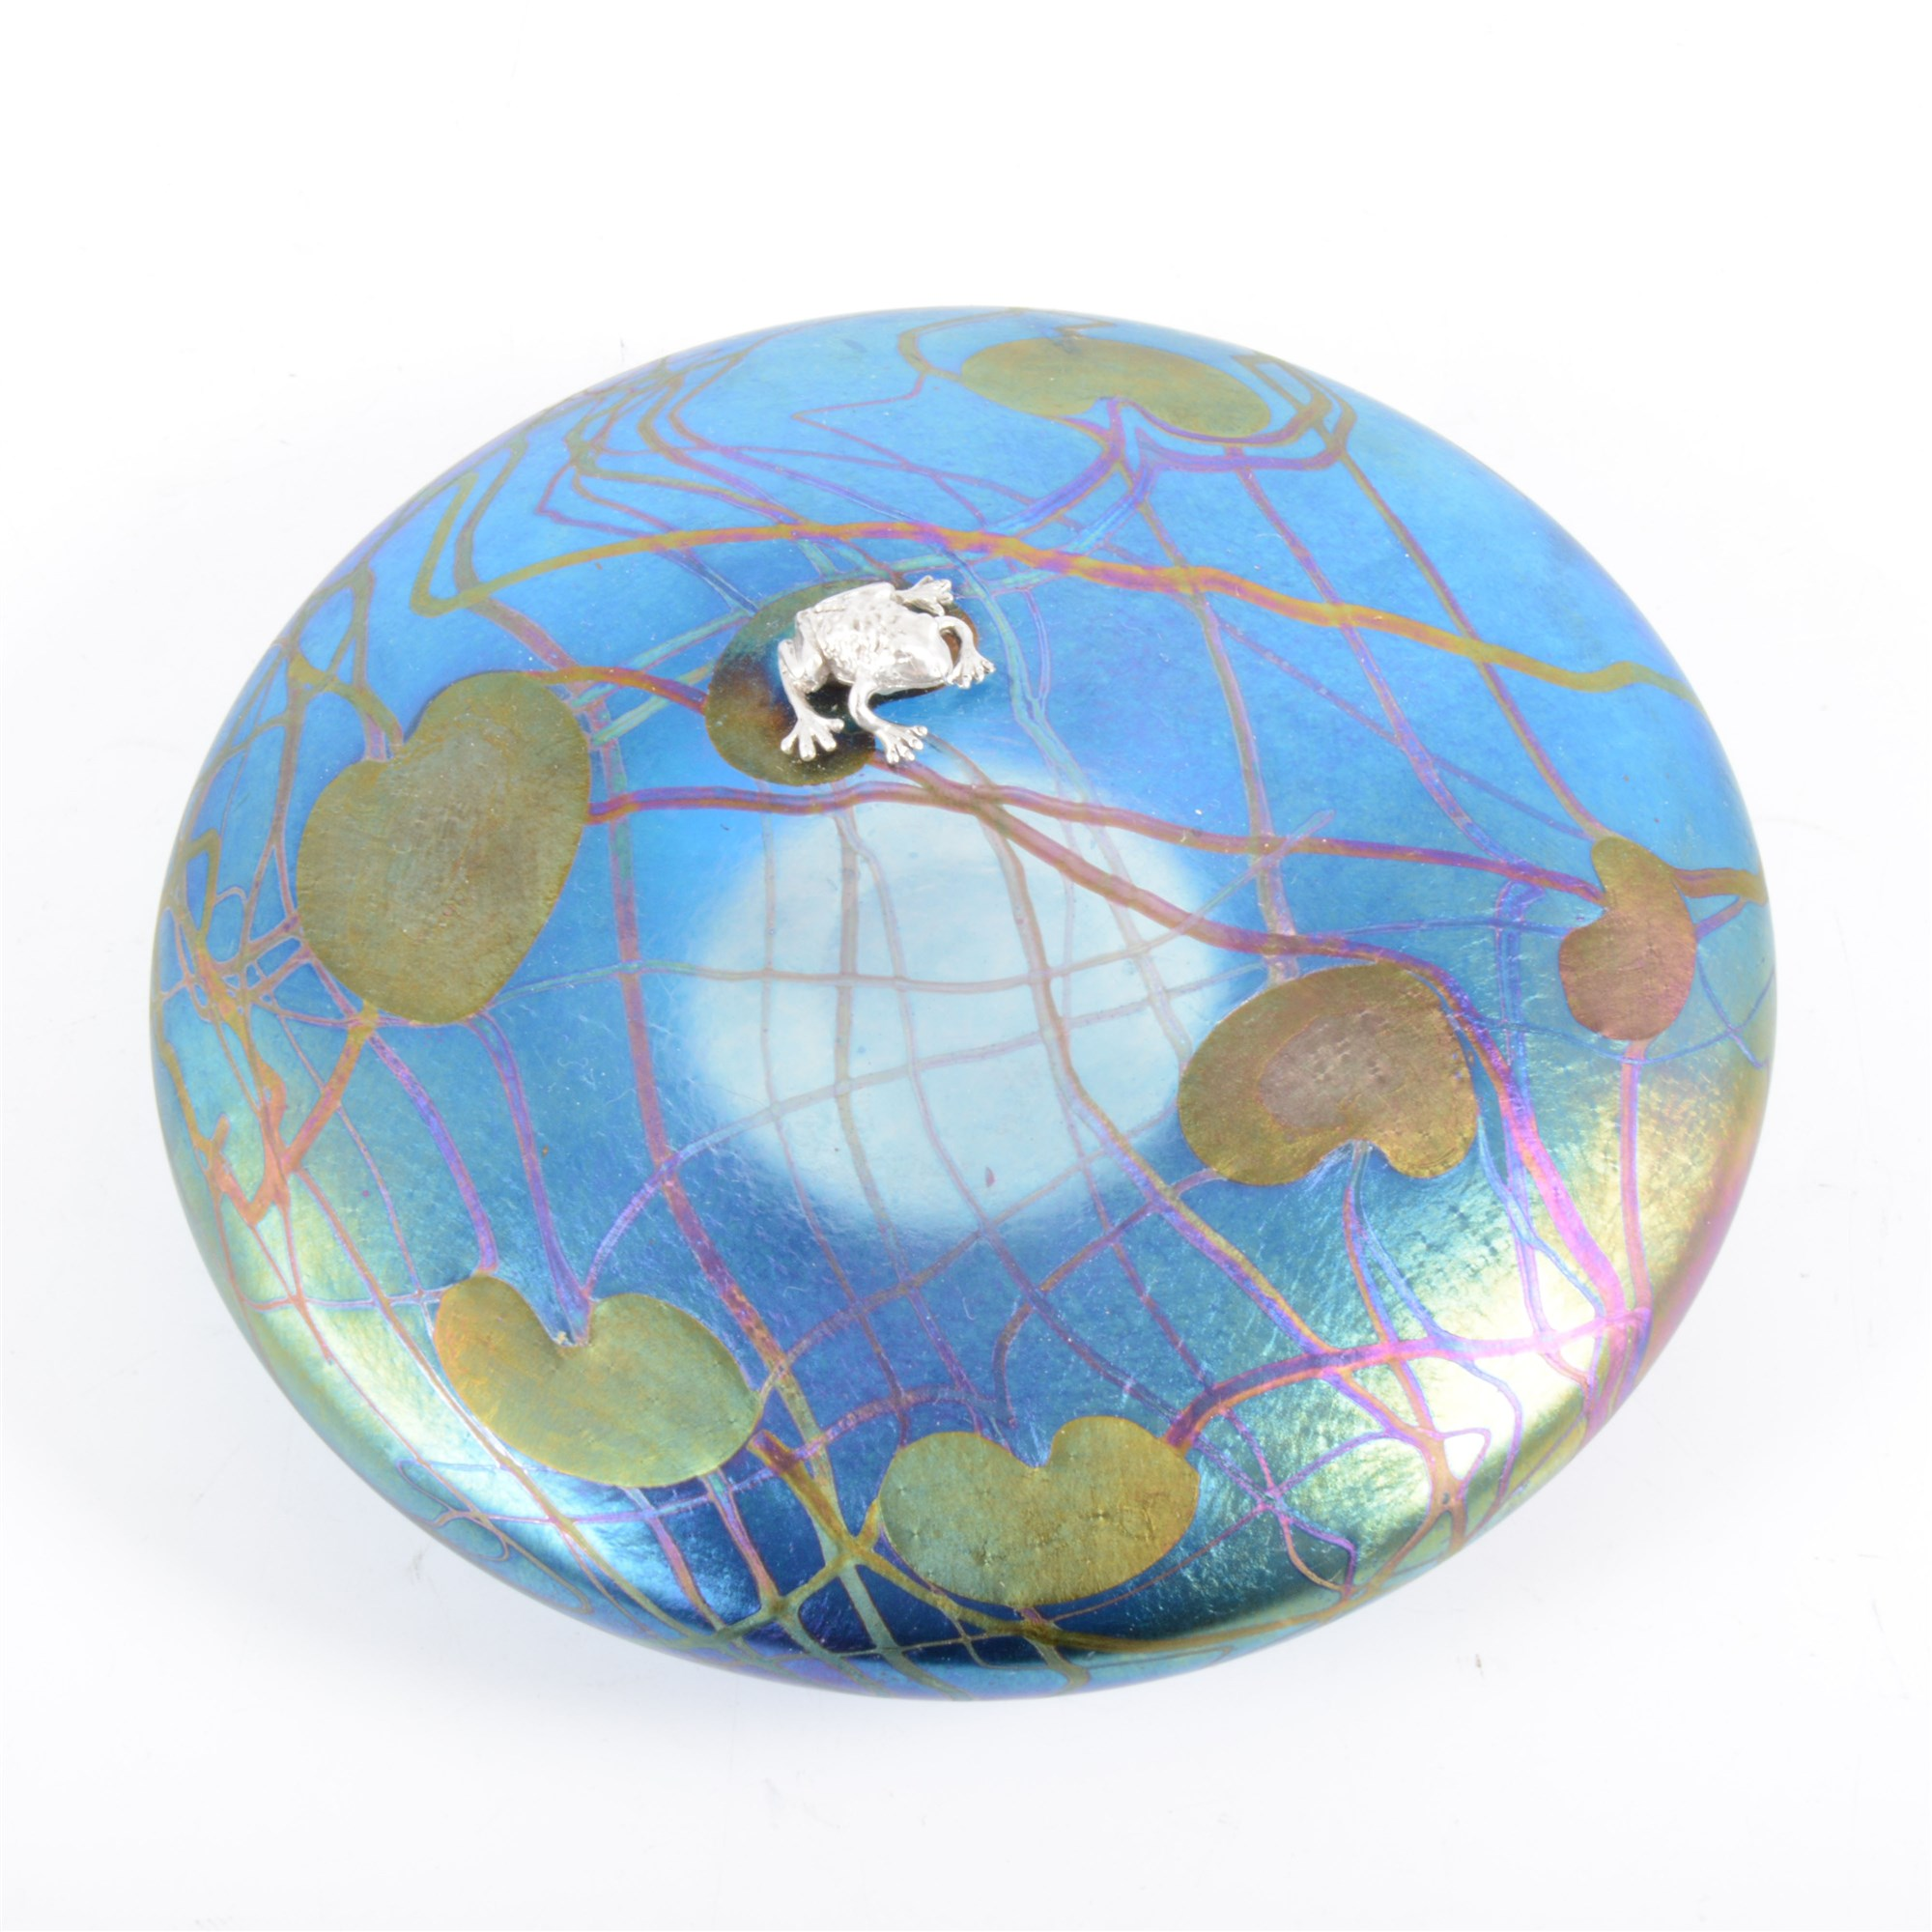 John Ditchfield Glasform lily pad paperweight